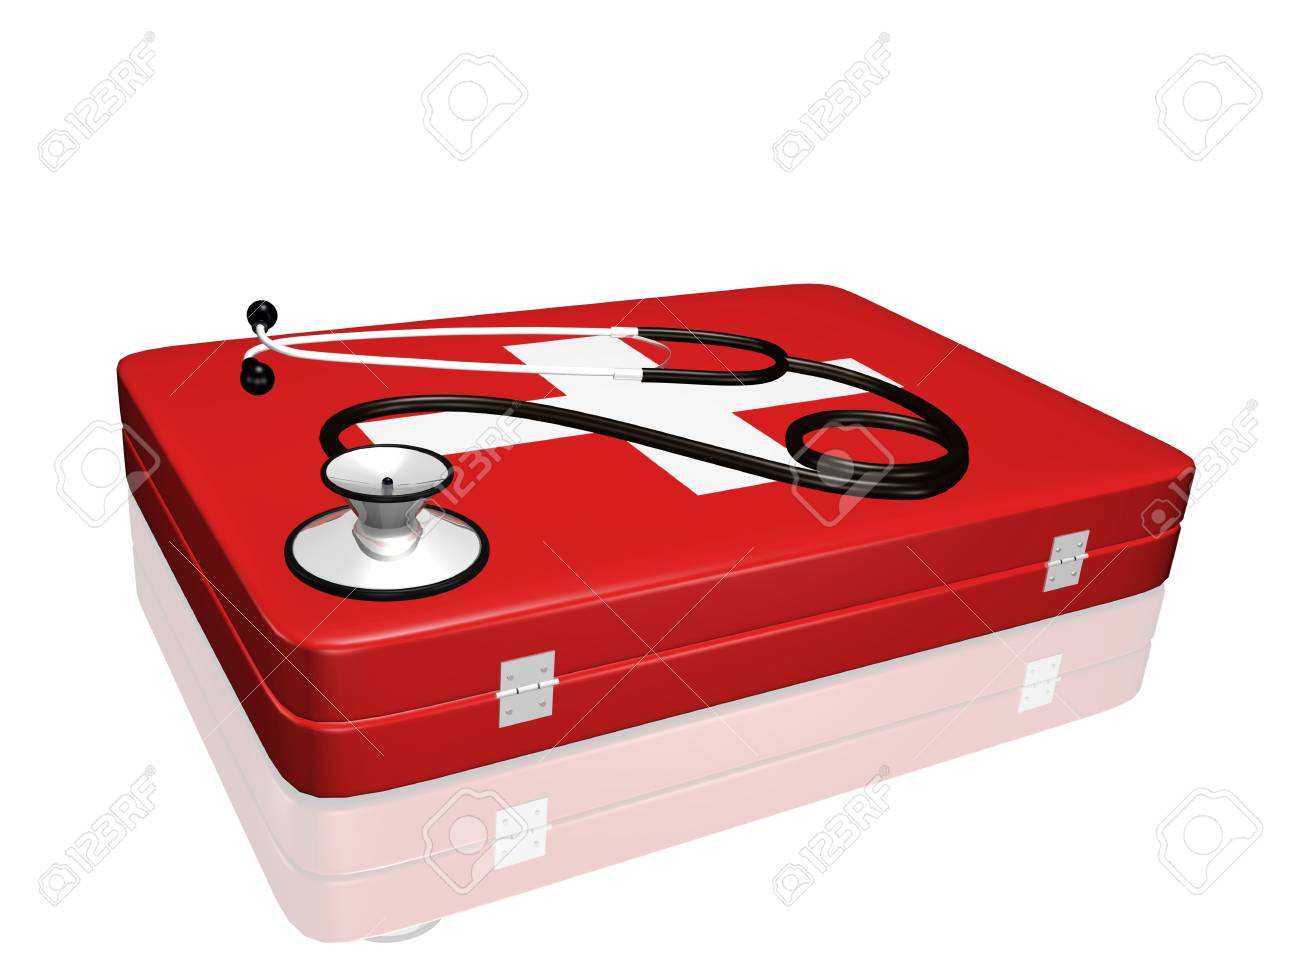 A 3D stethoscope on top of a medical kit. Stock Photo - 6851973